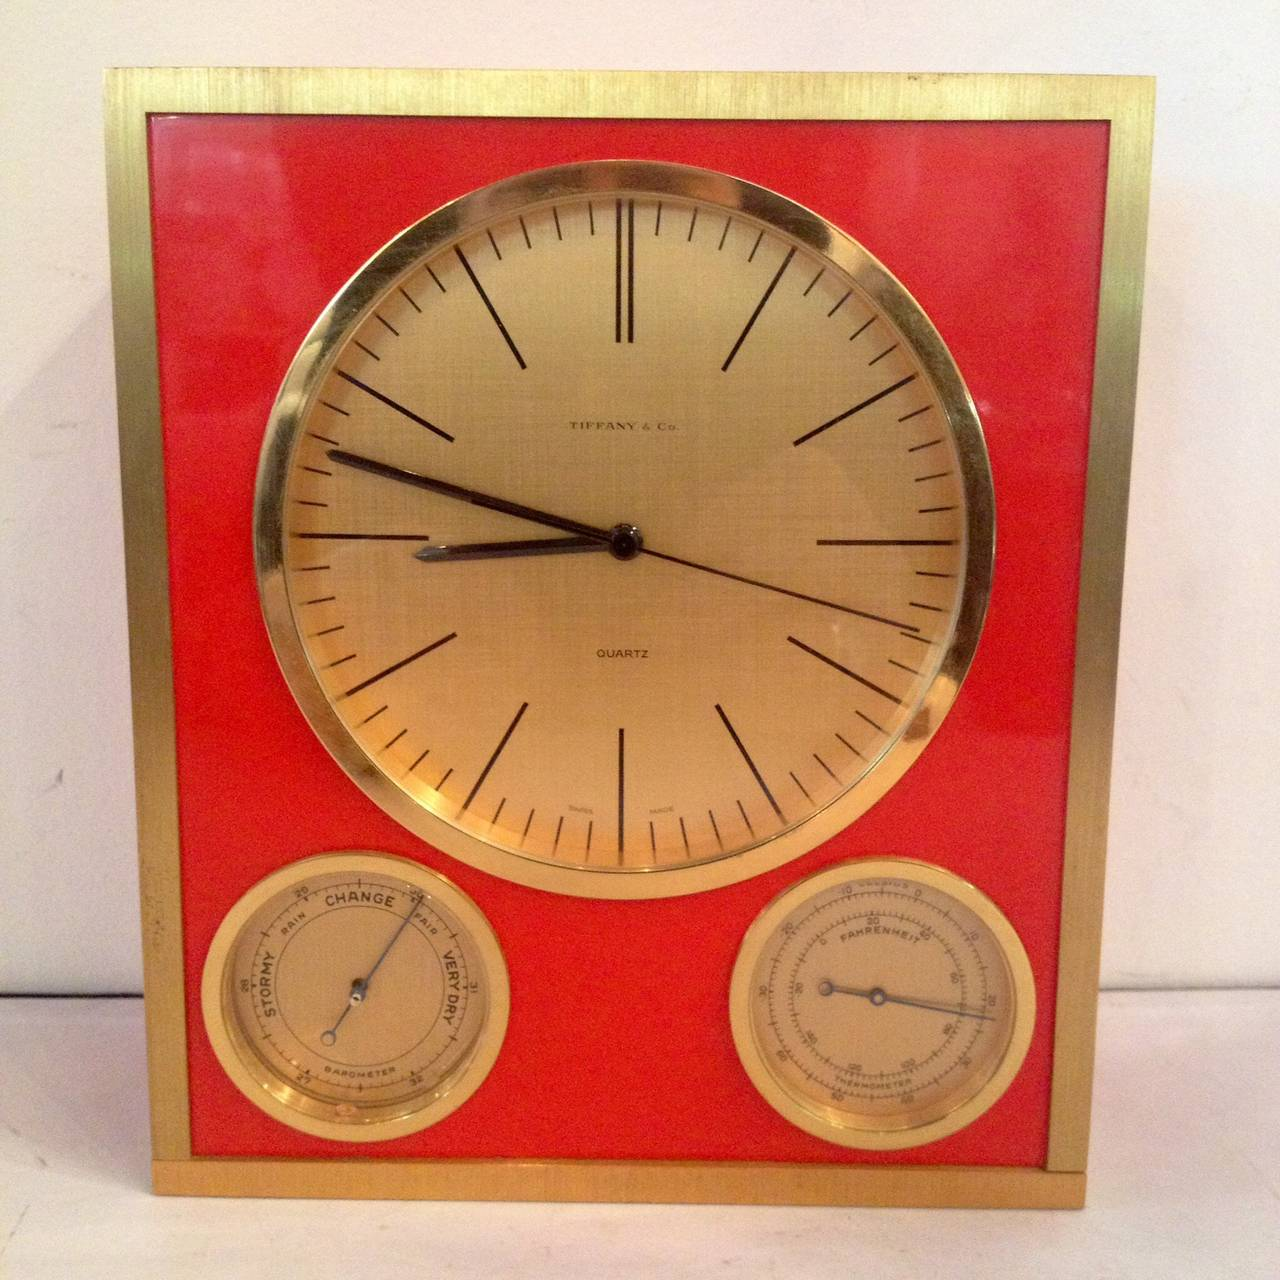 Tiffany and Company orange glass and brass clock barometer, thermometer, rare. Mid-Century design.